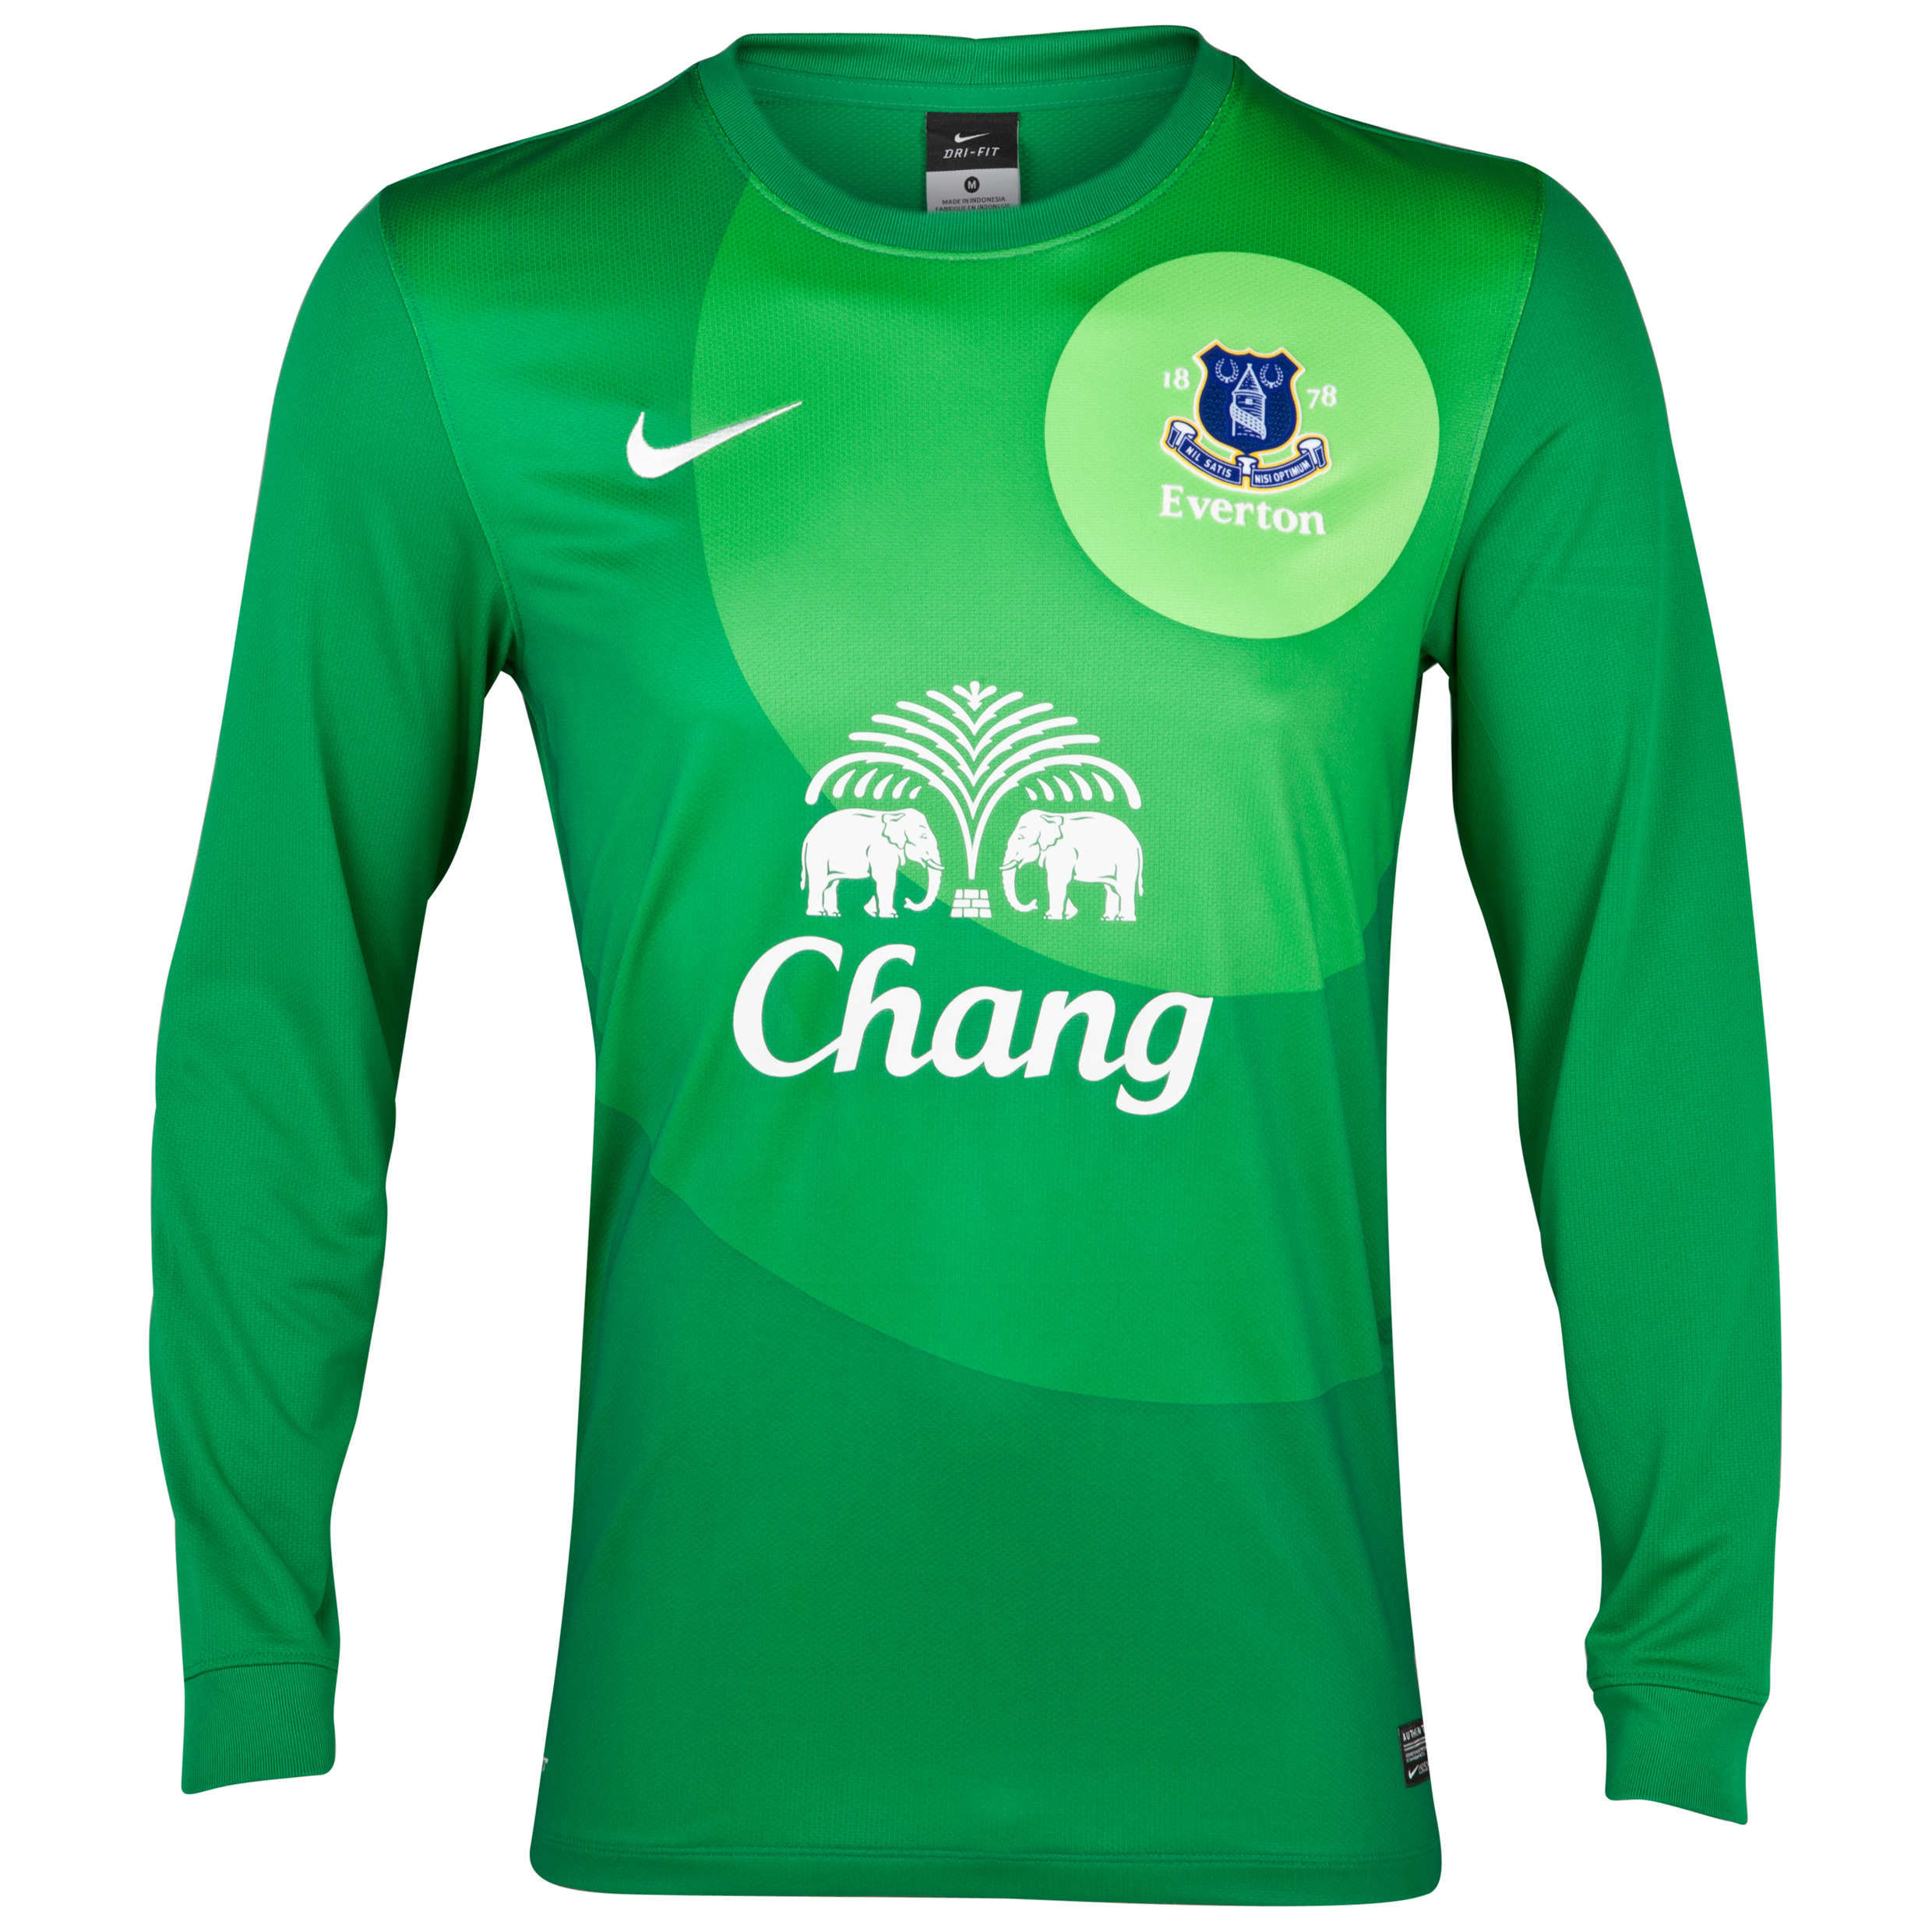 Everton Home Goalkeeper Shirt 2012/13